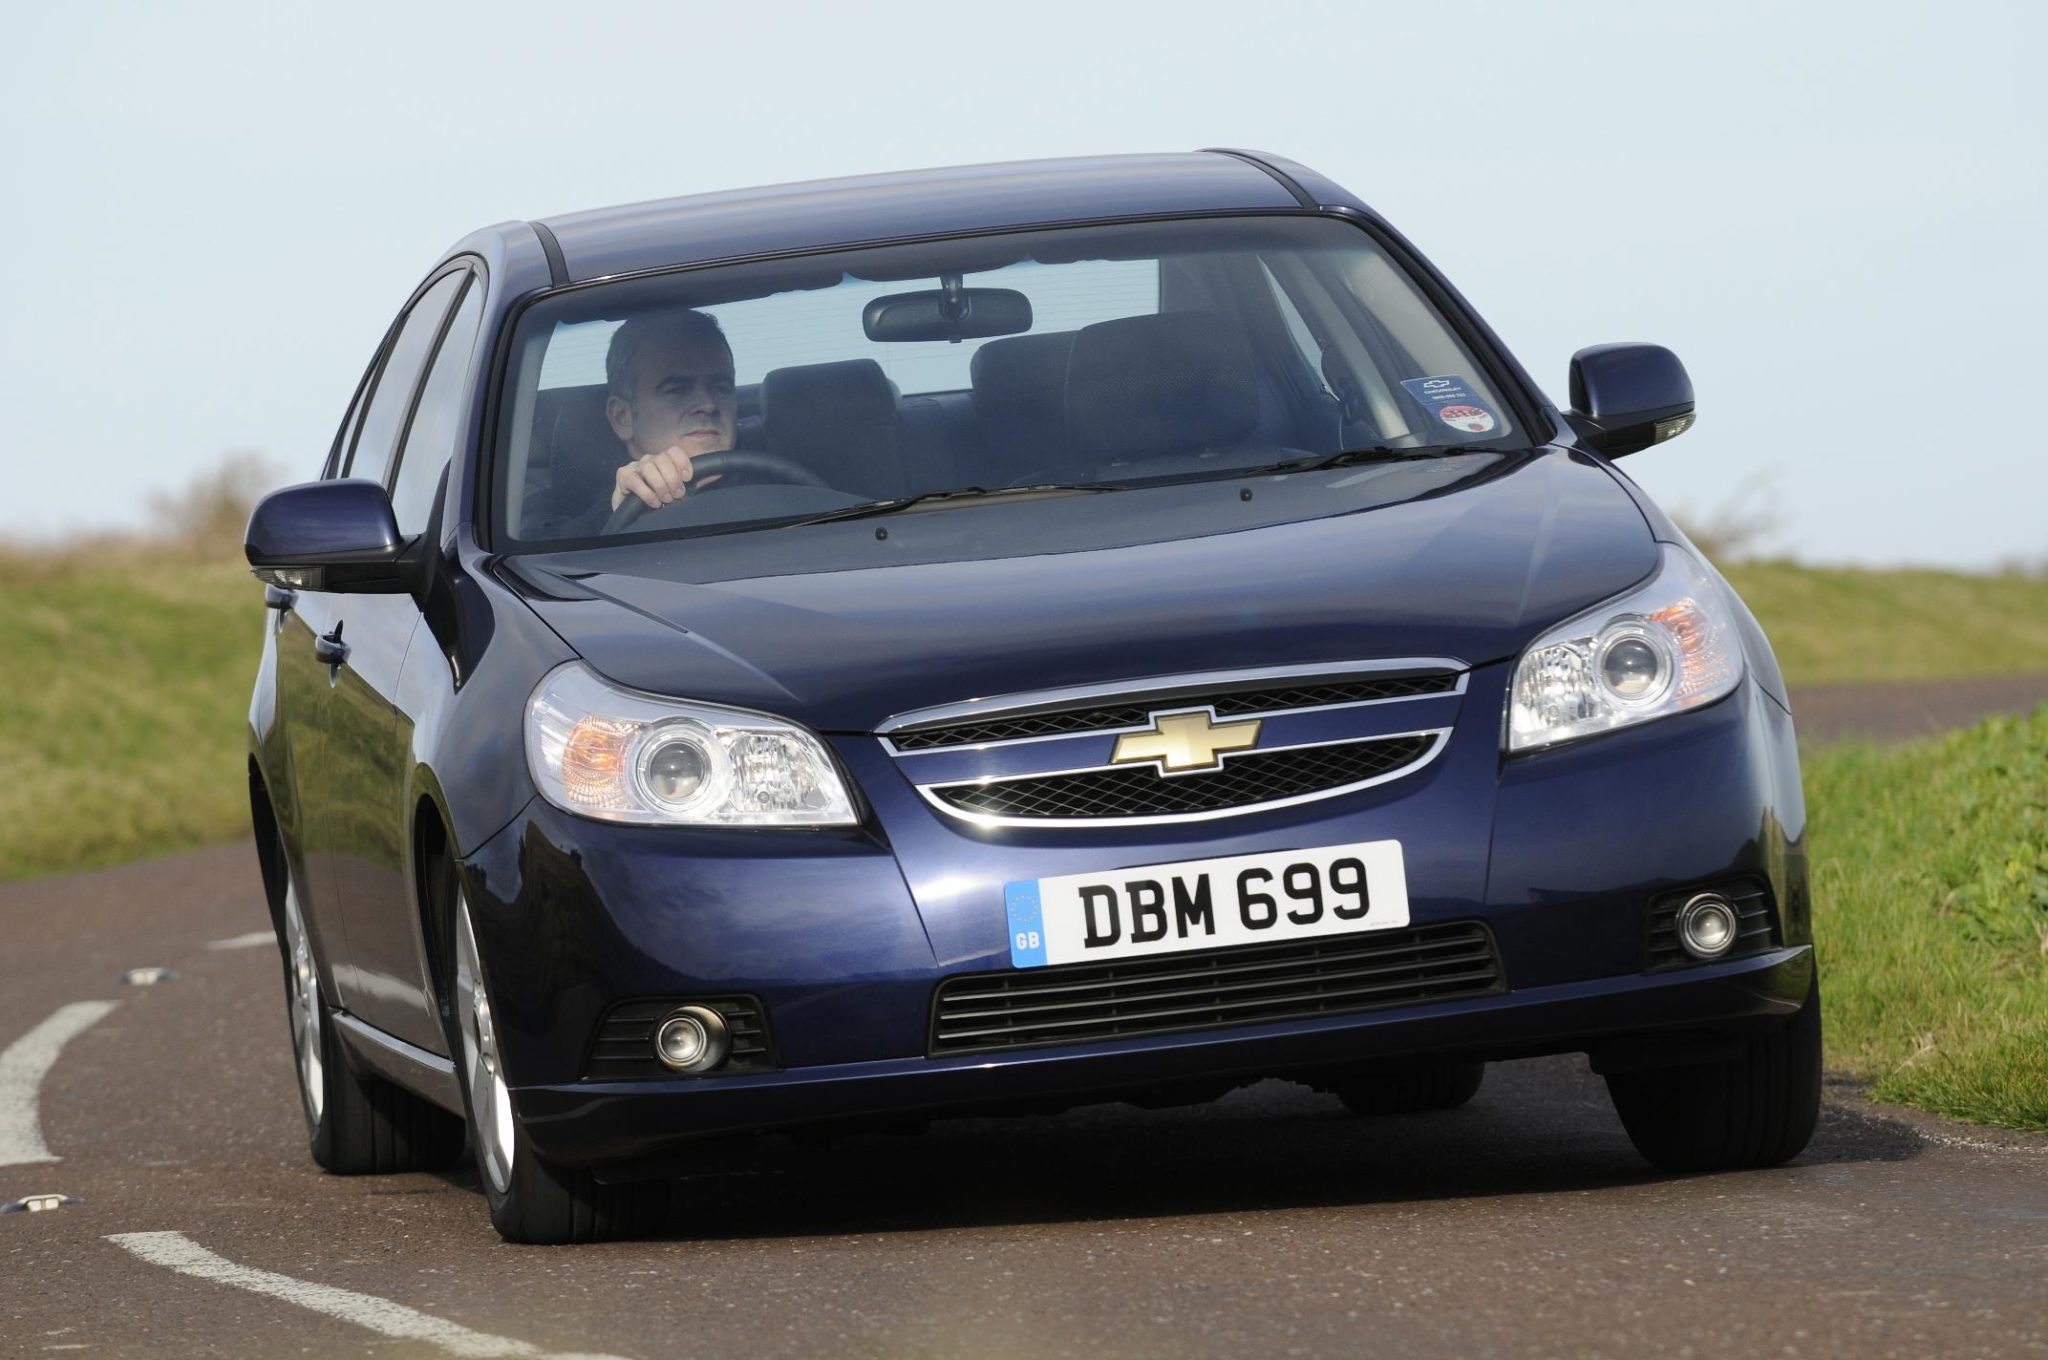 Chevrolet, Epica, Chevrolet Epica, saloon car, cheap car, motoring, automotive, not2grand, Chevrolet Epica Review, Daewoo, bargain car, featured